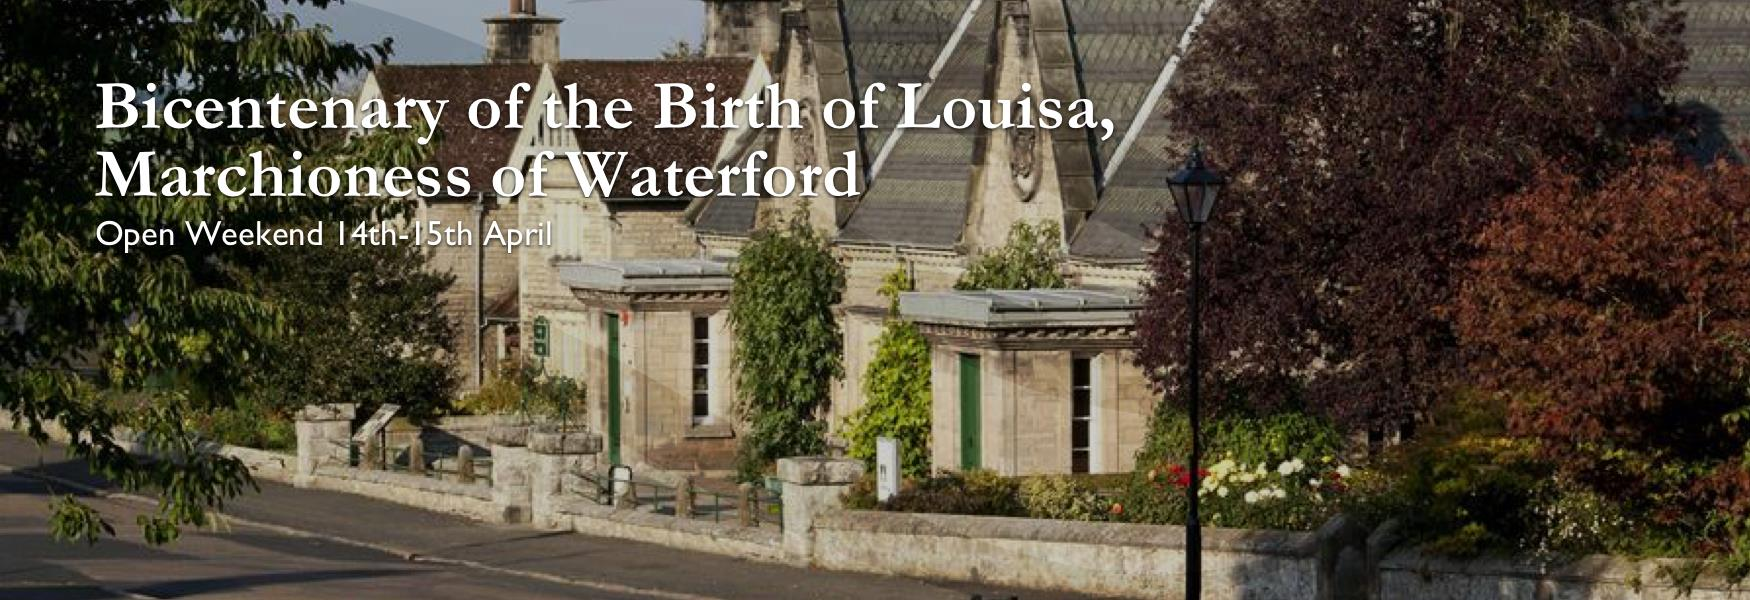 Bicentenary of the Birth of Louisa, Marchioness of Waterford